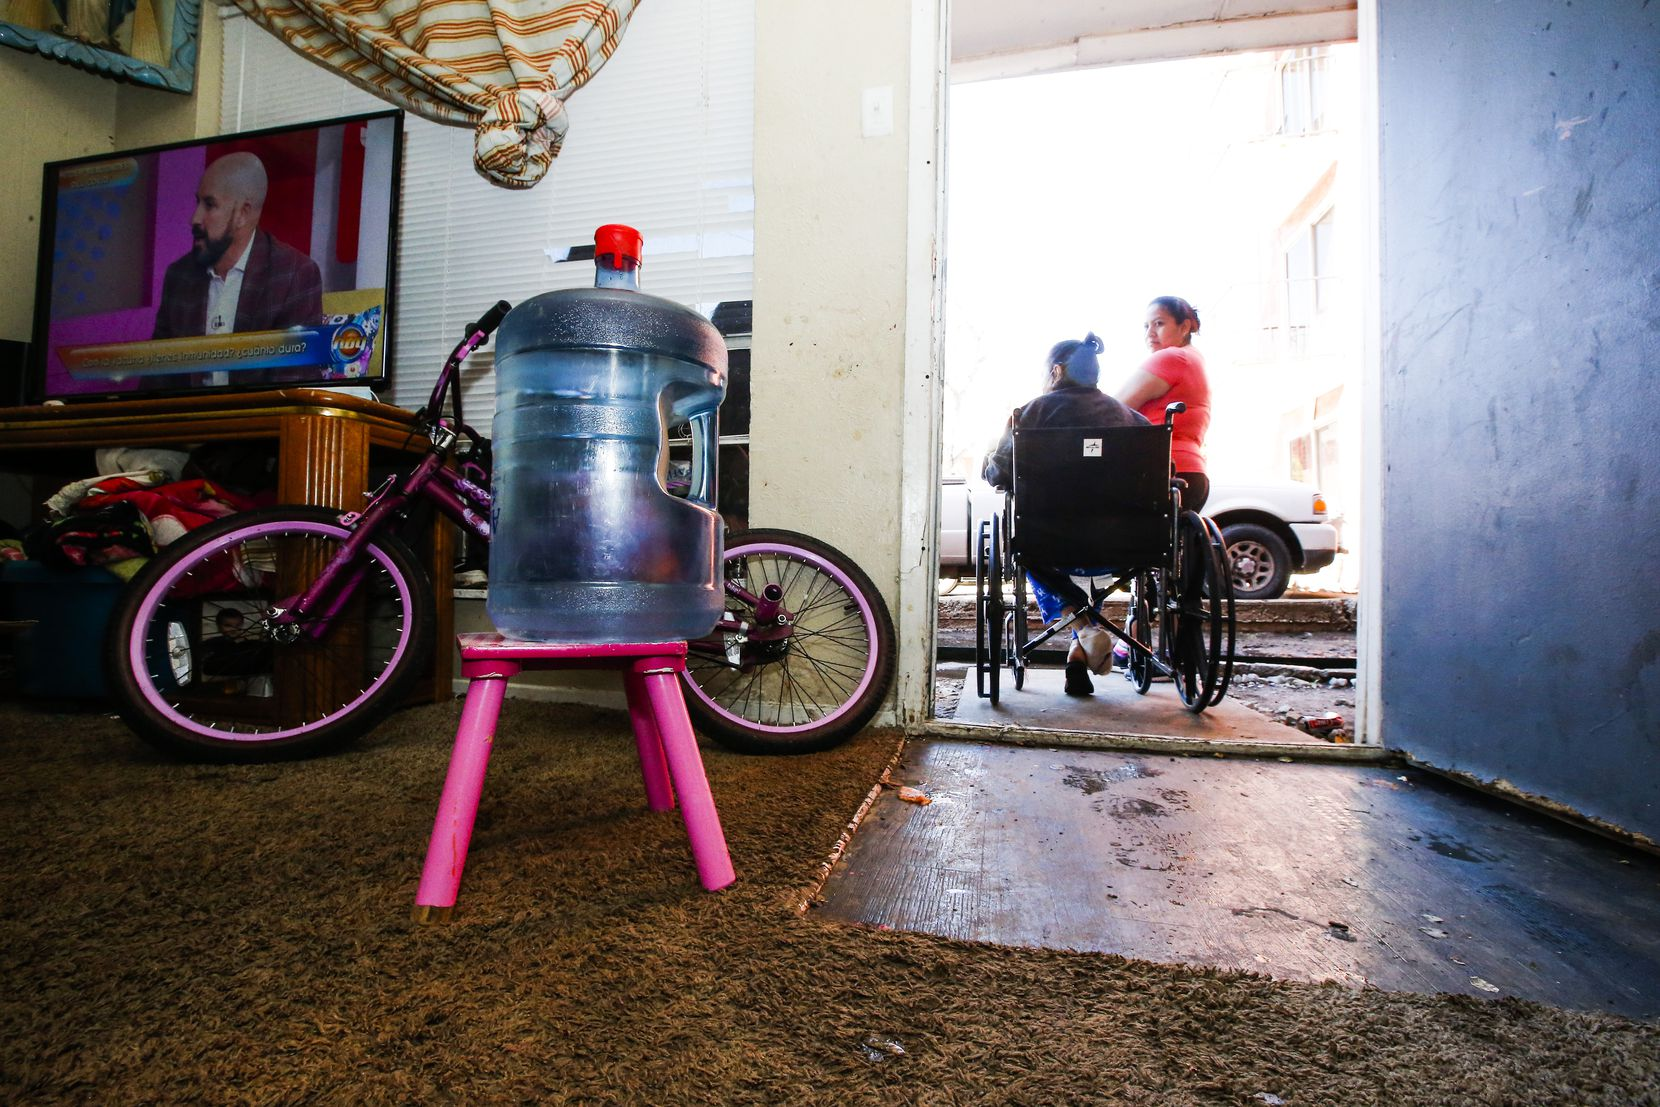 A water jug sat on a stool inside Modesta Gonzalez's home at the Villas del Solamar apartments in Dallas on Feb. 24, 2021. The apartments' water lines froze and broke in the severe cold last week, leaving residents without running water.